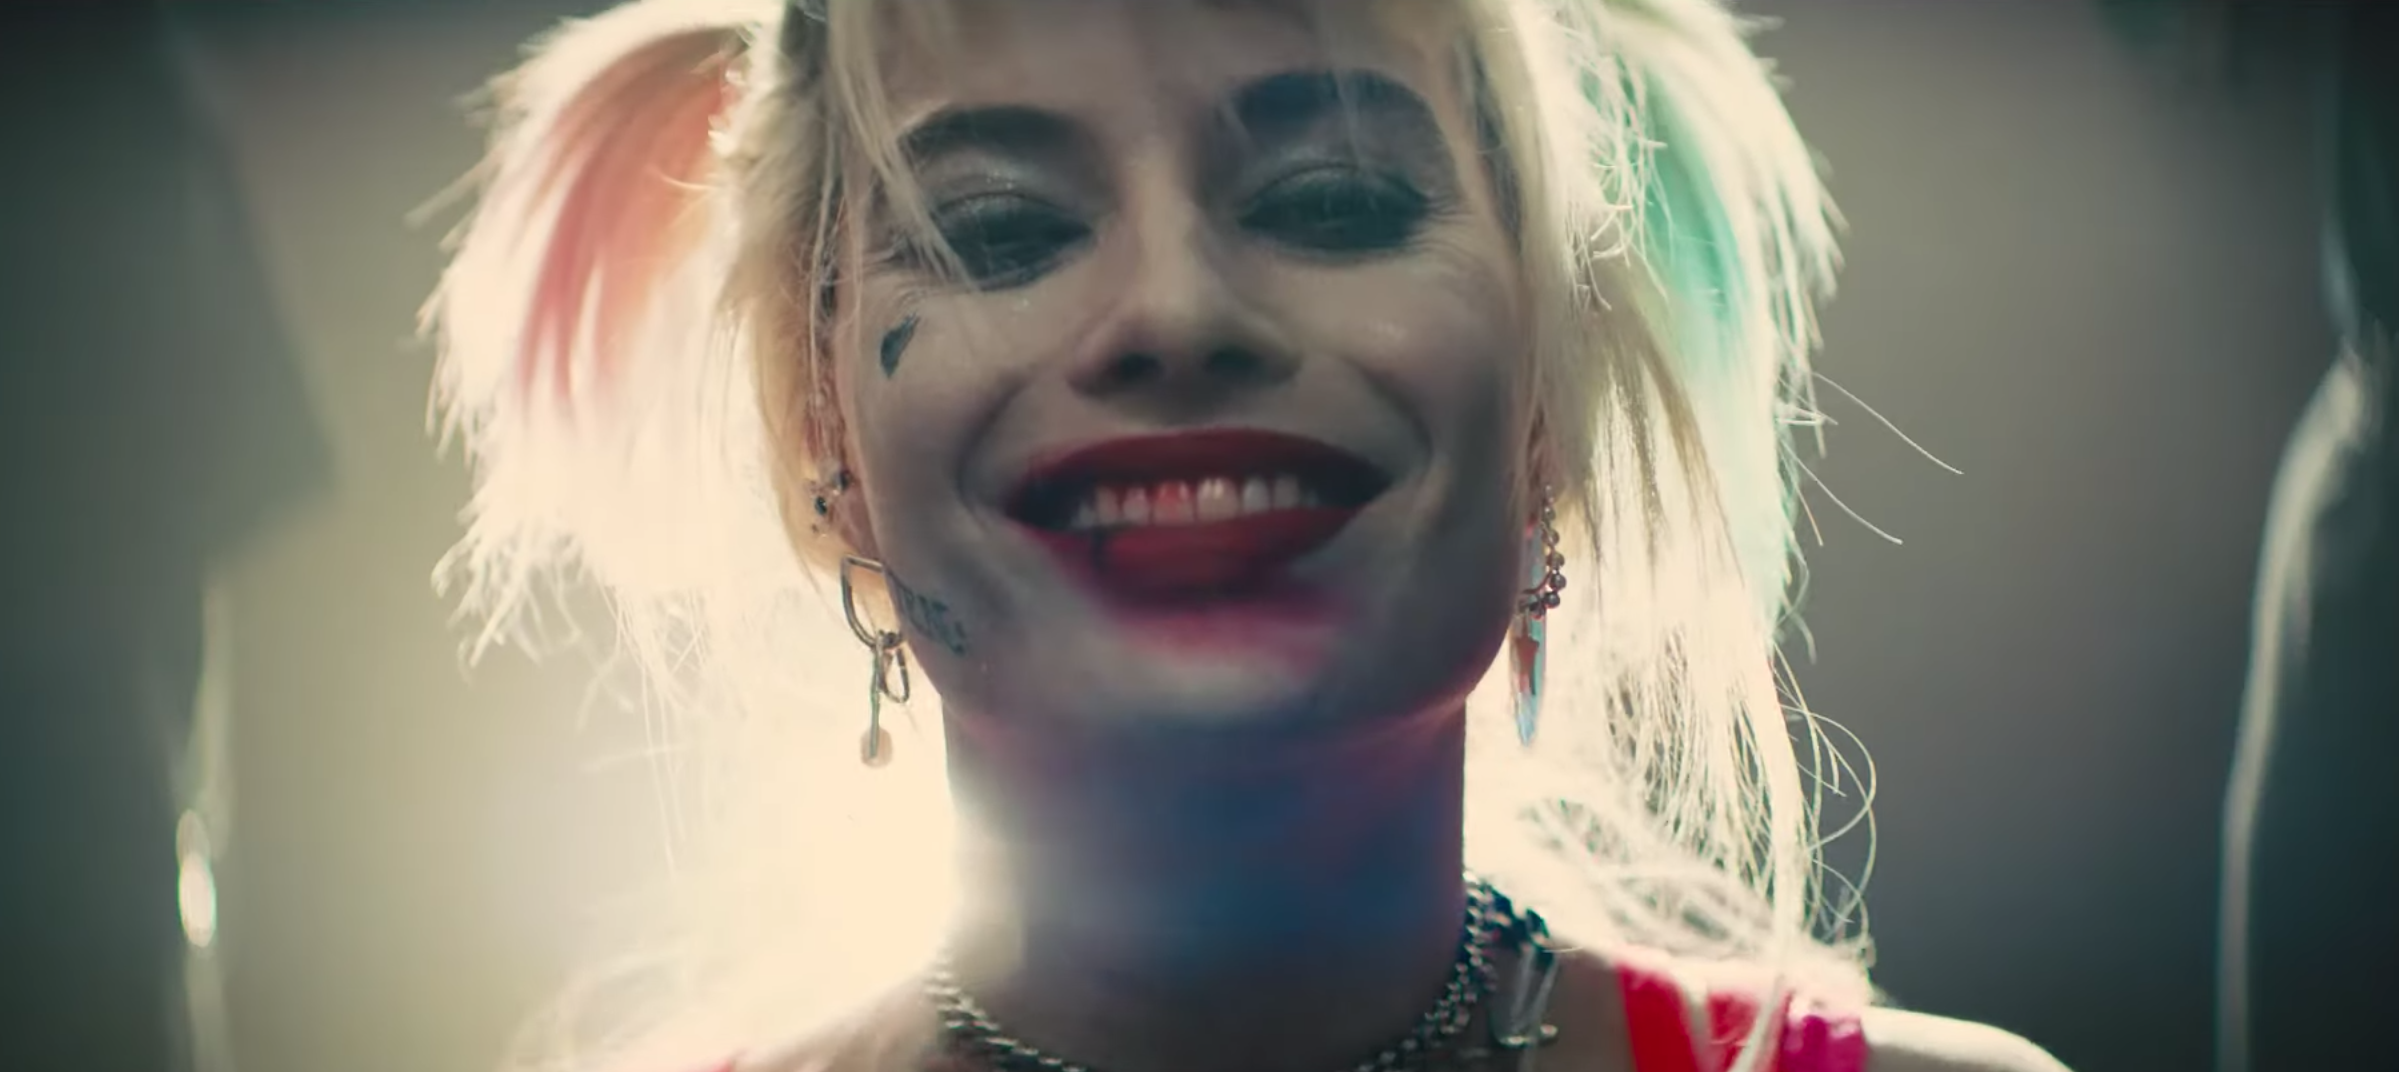 Margot Robbie as Harley Quinn in Birds of Prey. (Warner Bros.)